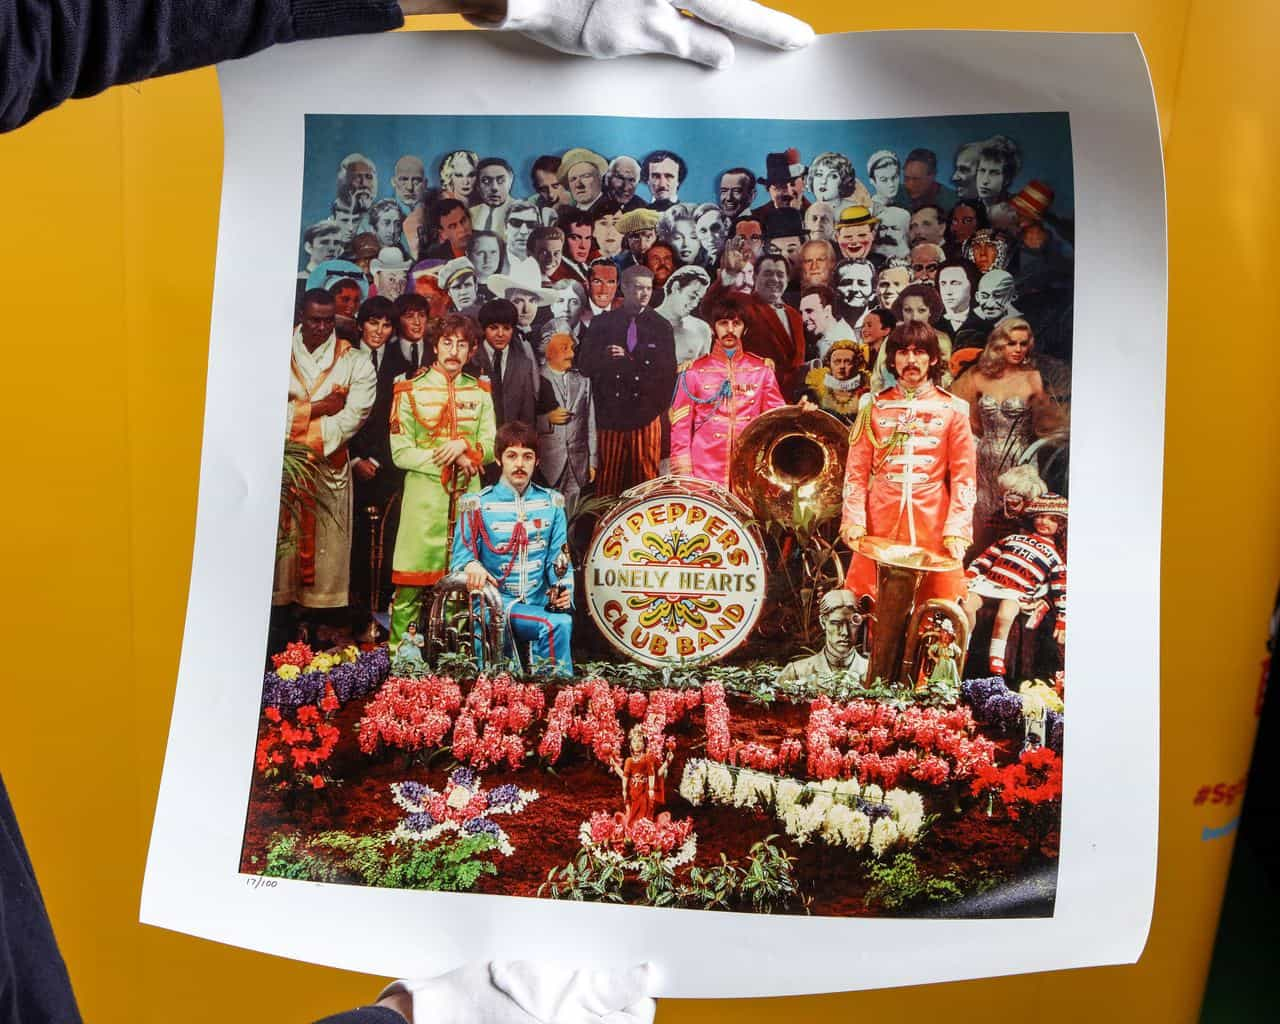 Alternative cover to the record Sgt. Pepper's Lonely Hearts Club Band by Sir Peter Blake